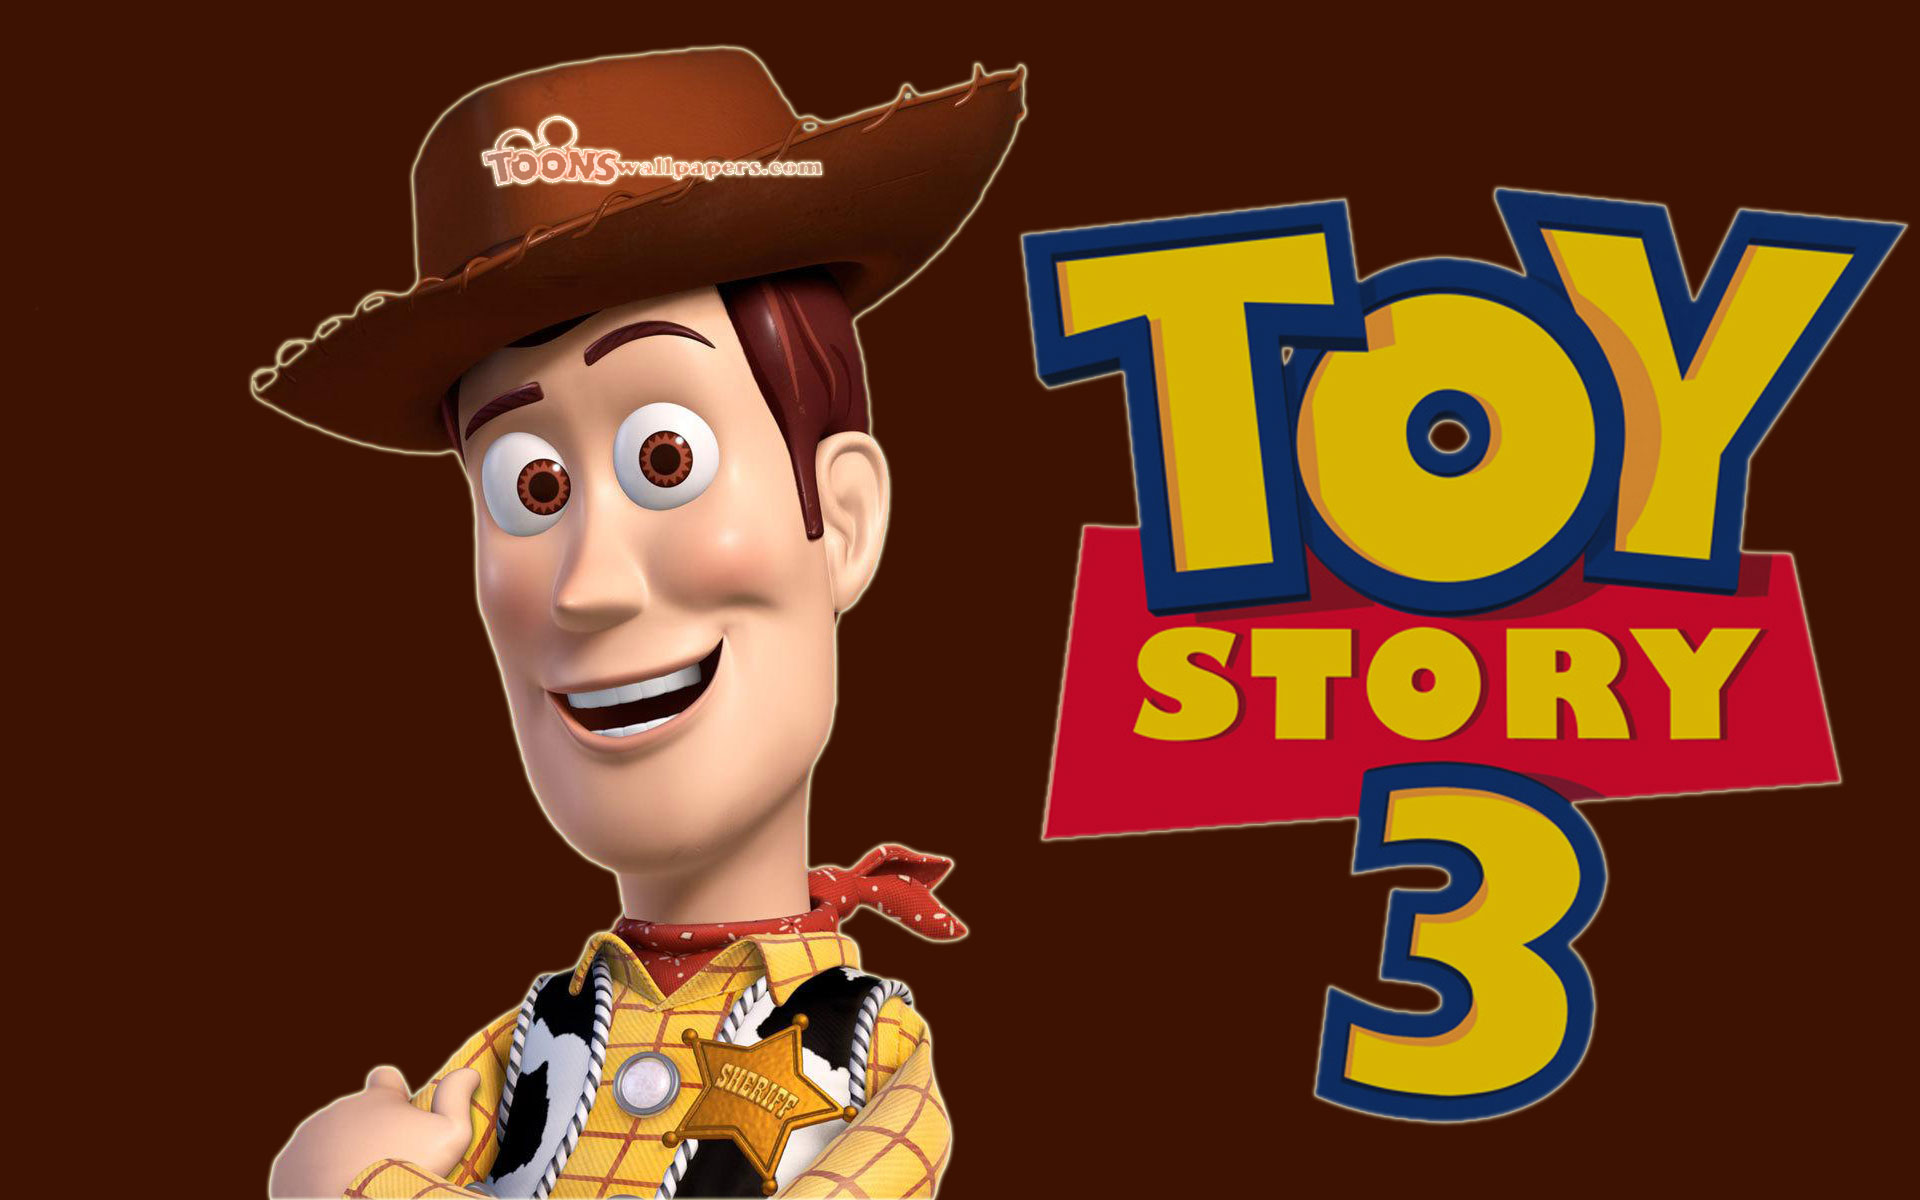 toy story 3 Full HD Wallpaper and Background Image ...